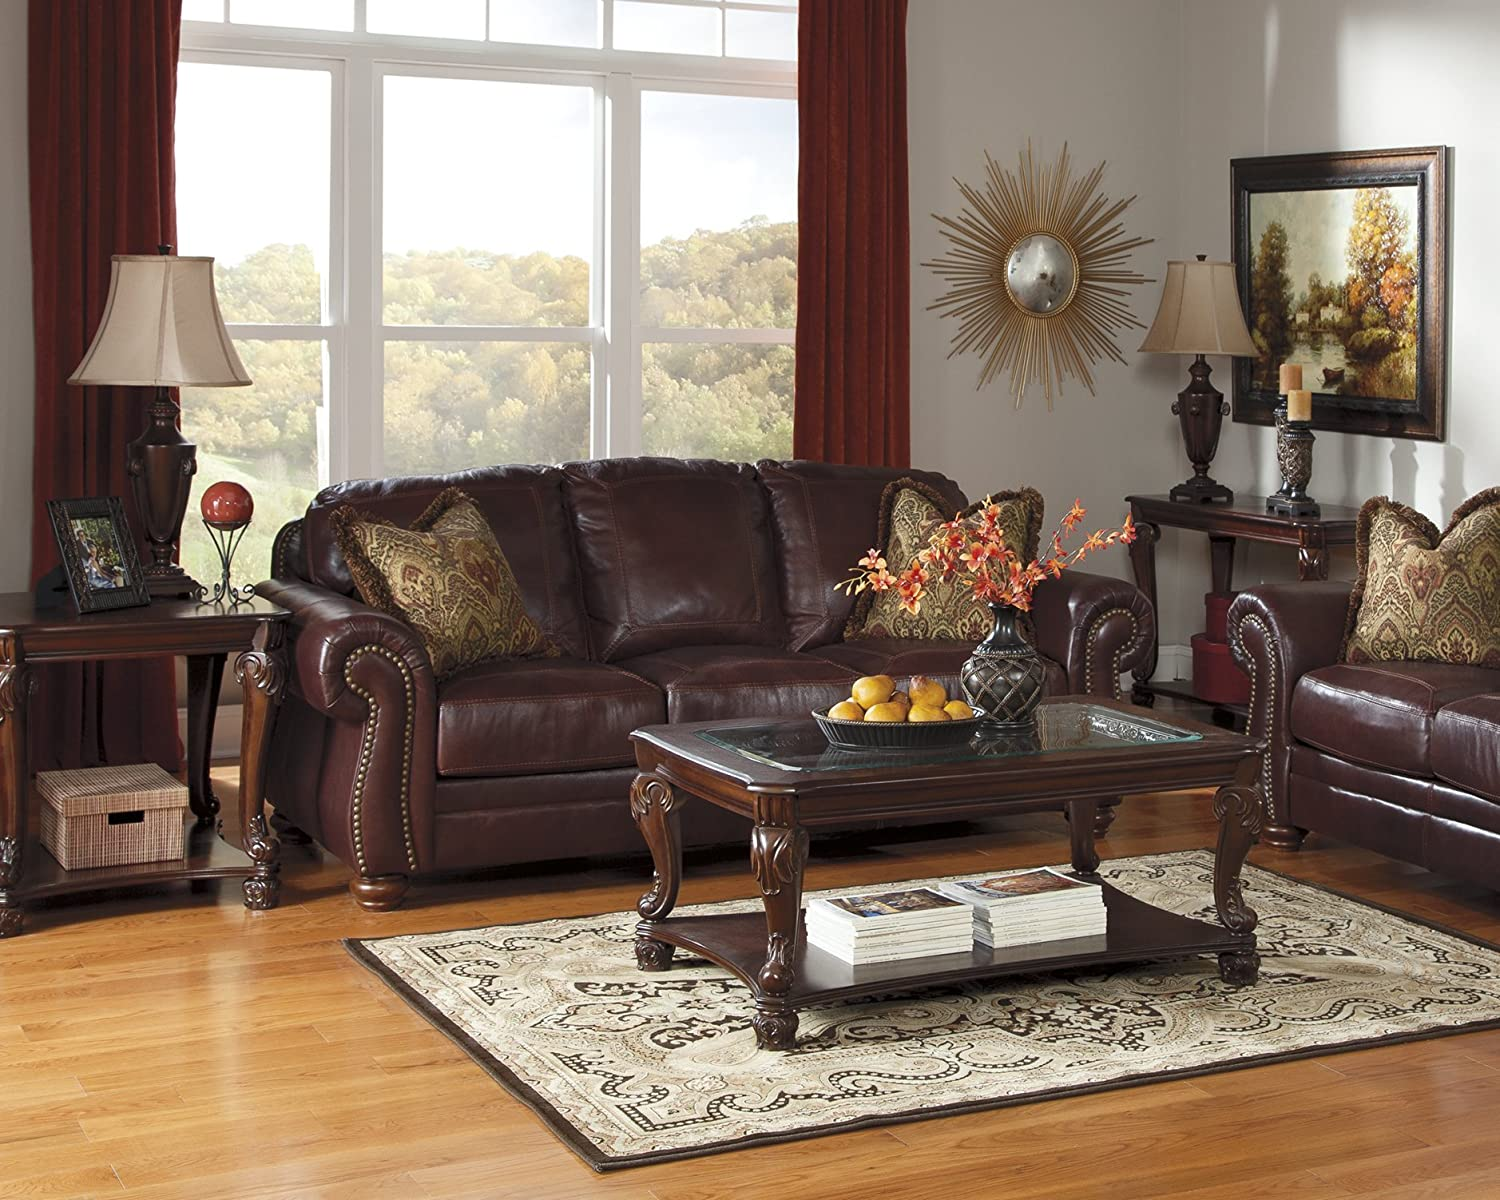 Signature Design by Ashley Furniture-Norcastle End Table-Traditional Style-Dark Brown